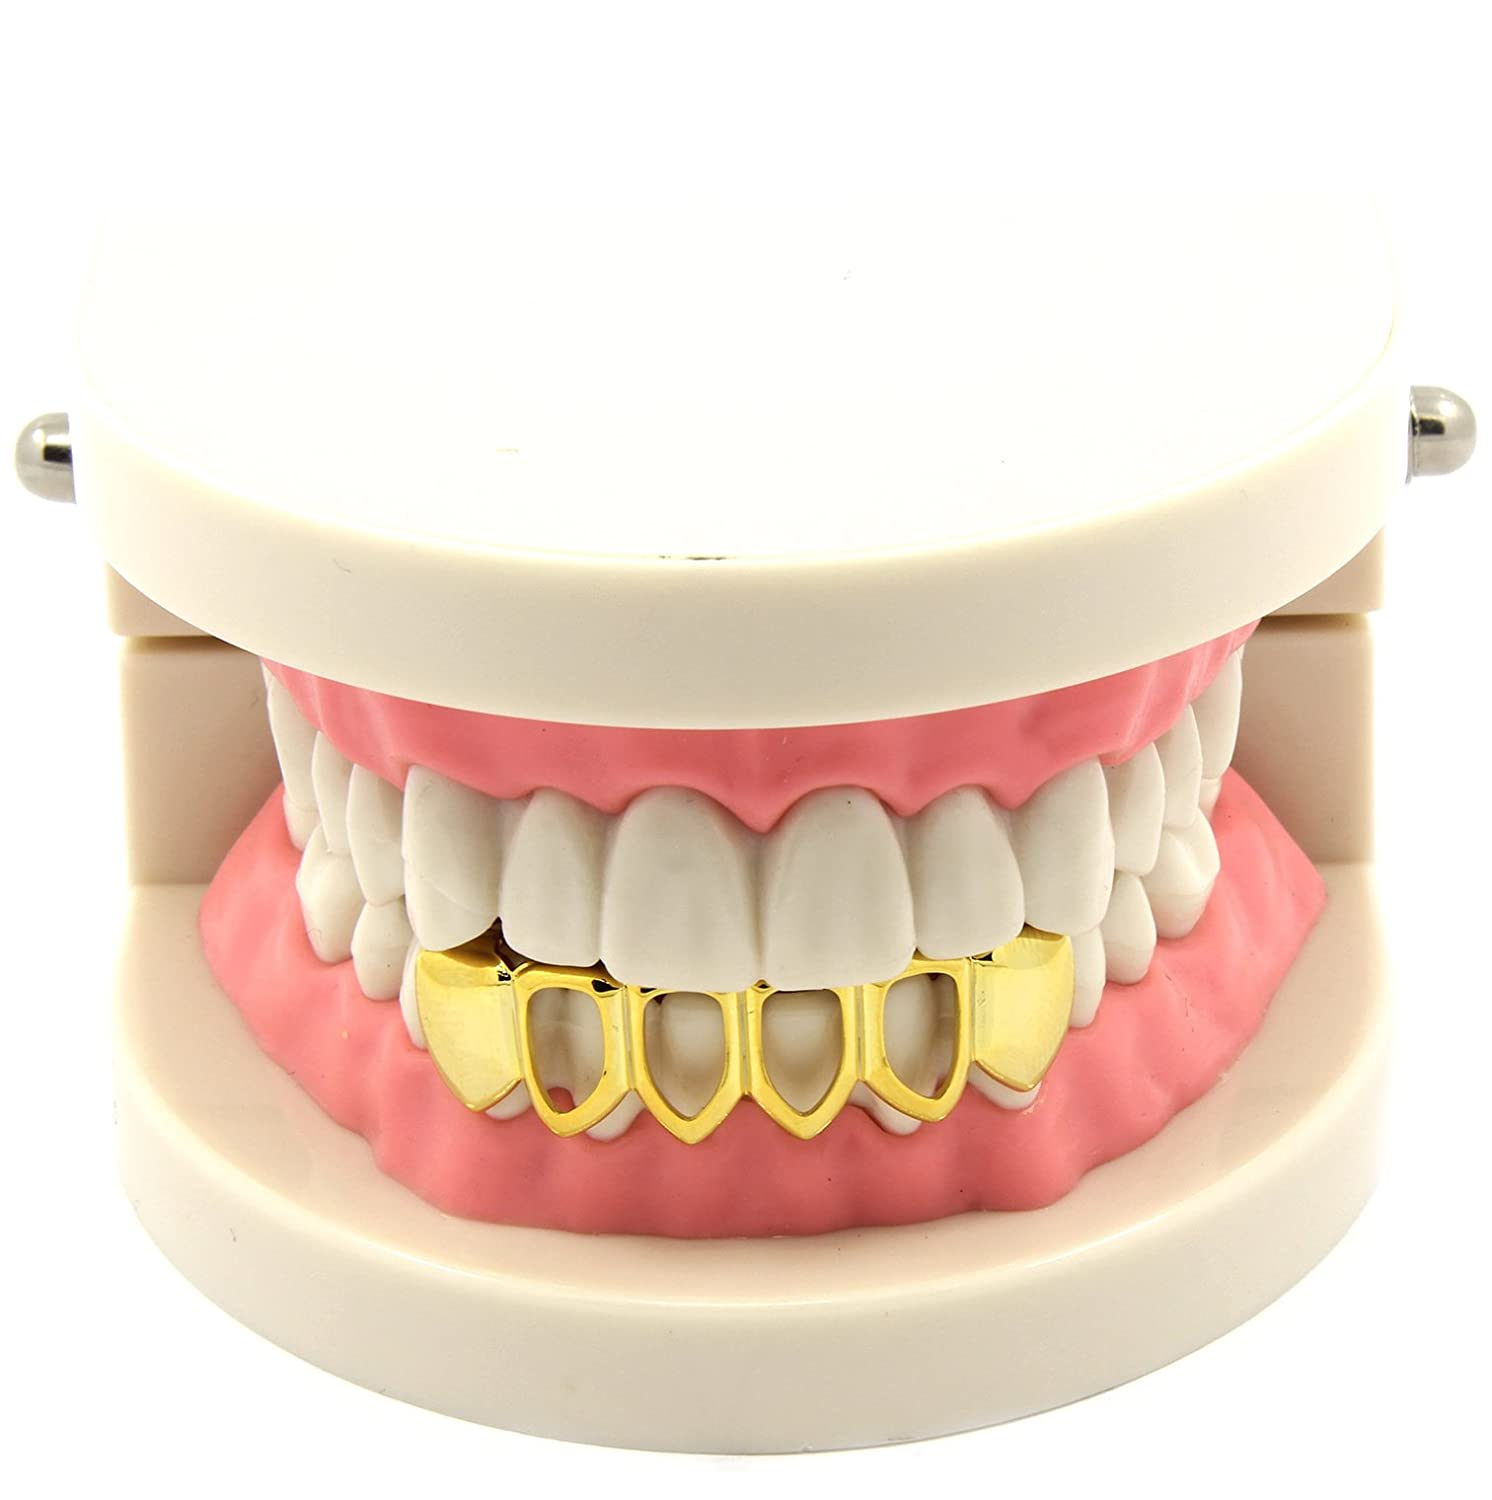 Custom Fit 14k Gold Plated Hip Hop Teeth Open Hollow Grillz Caps Bottom Grill Jewel Town GG12